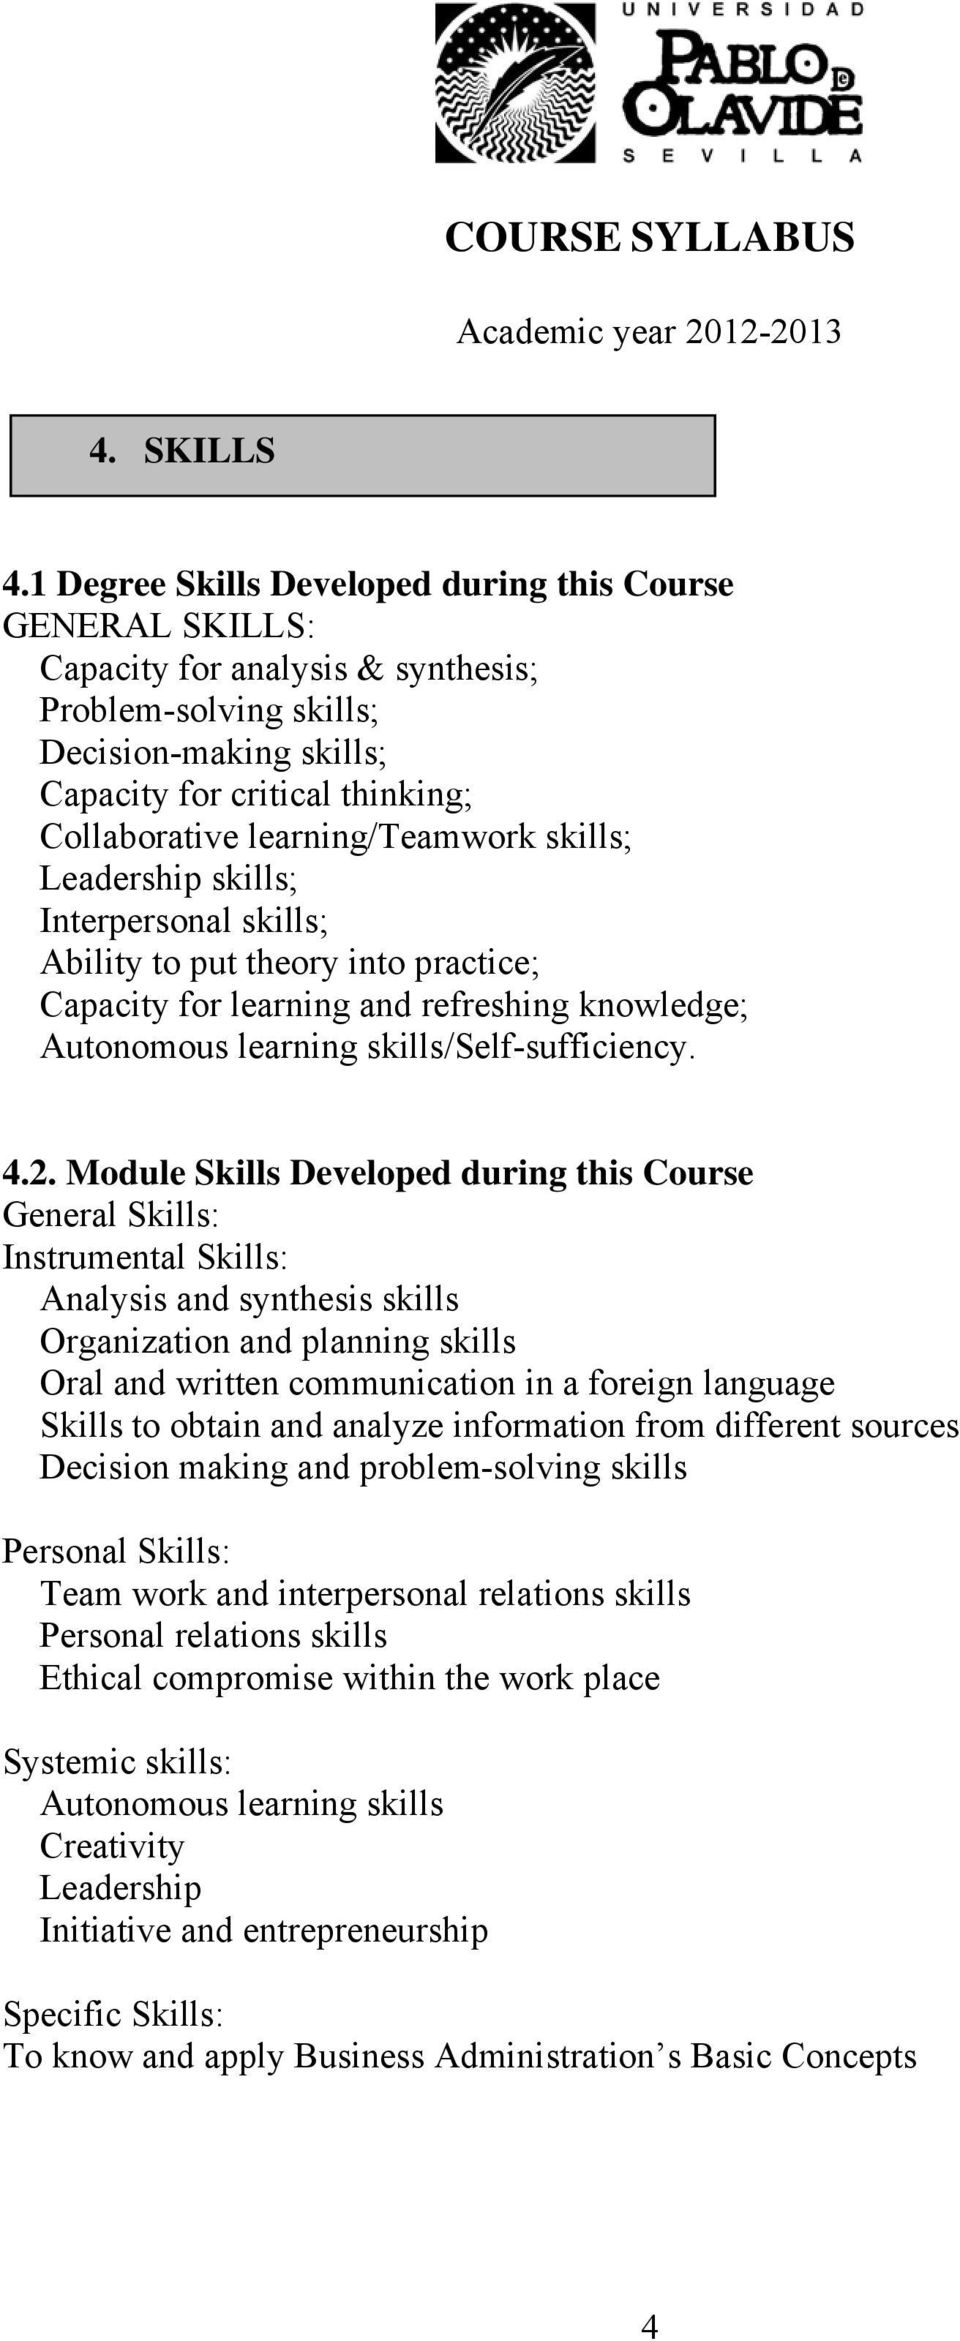 learning/teamwork skills; Leadership skills; Interpersonal skills; Ability to put theory into practice; Capacity for learning and refreshing knowledge; Autonomous learning skills/self-sufficiency. 4.